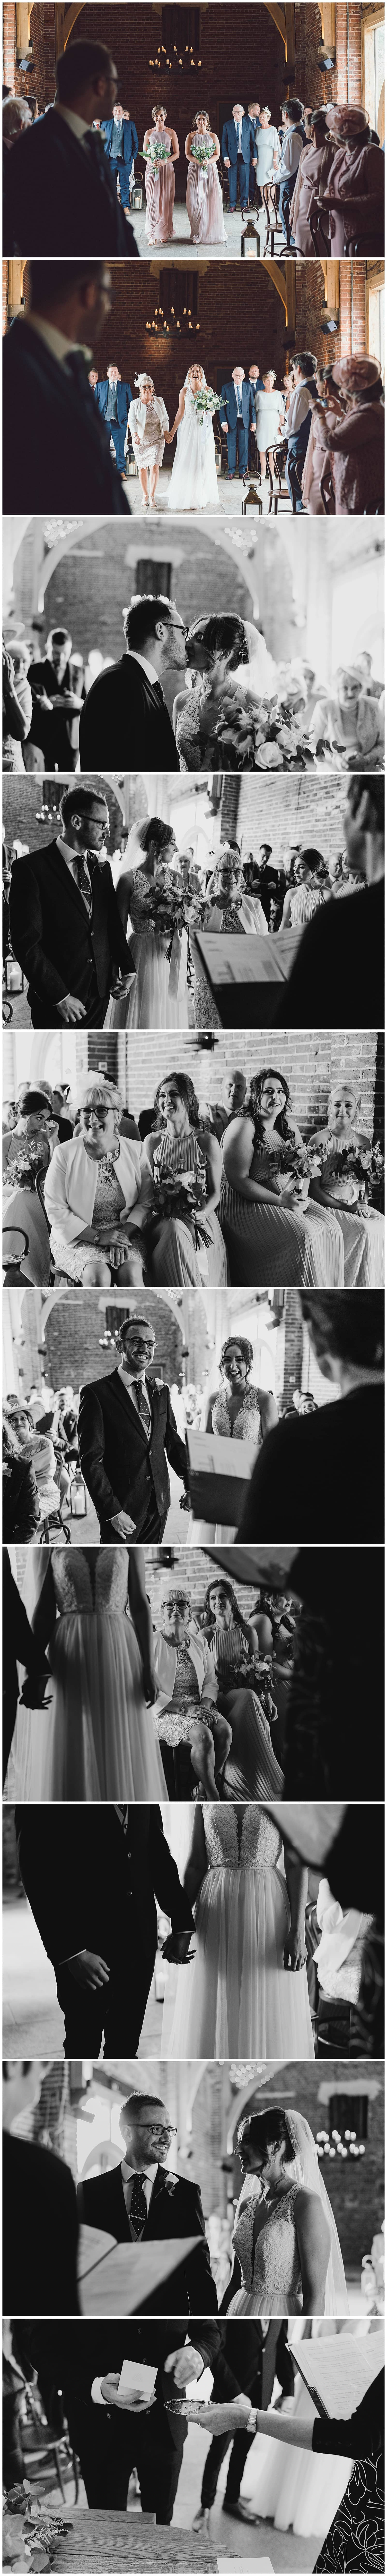 Wedding Photography at Hazel Gap Barn – bride arriving with her mum walking down the aisle